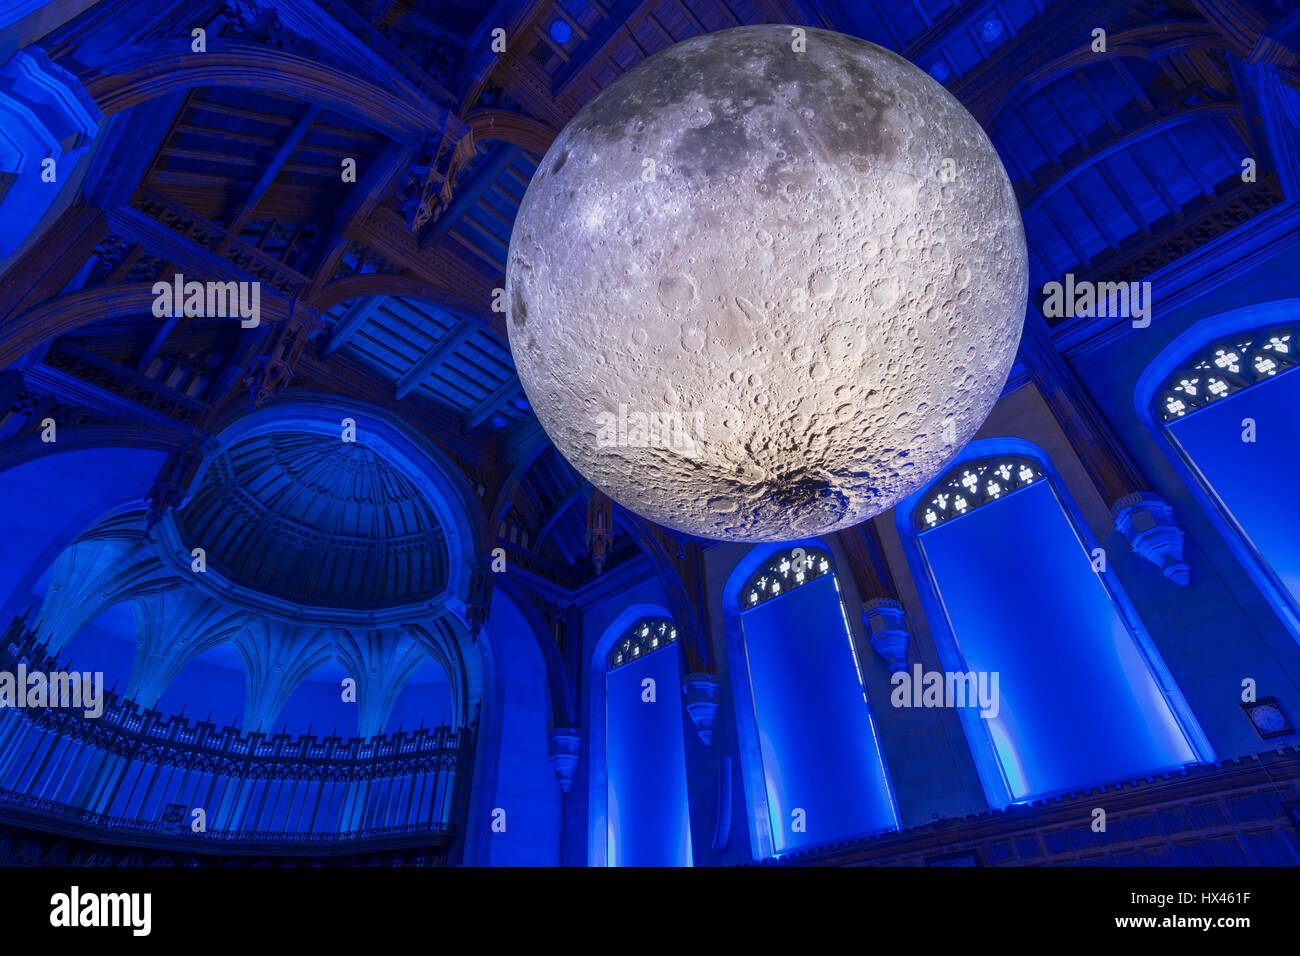 Luke Jerram's Museum of the Moon at the University of Bristol, Bristol, UK A large balloon covered in images of - Stock Image